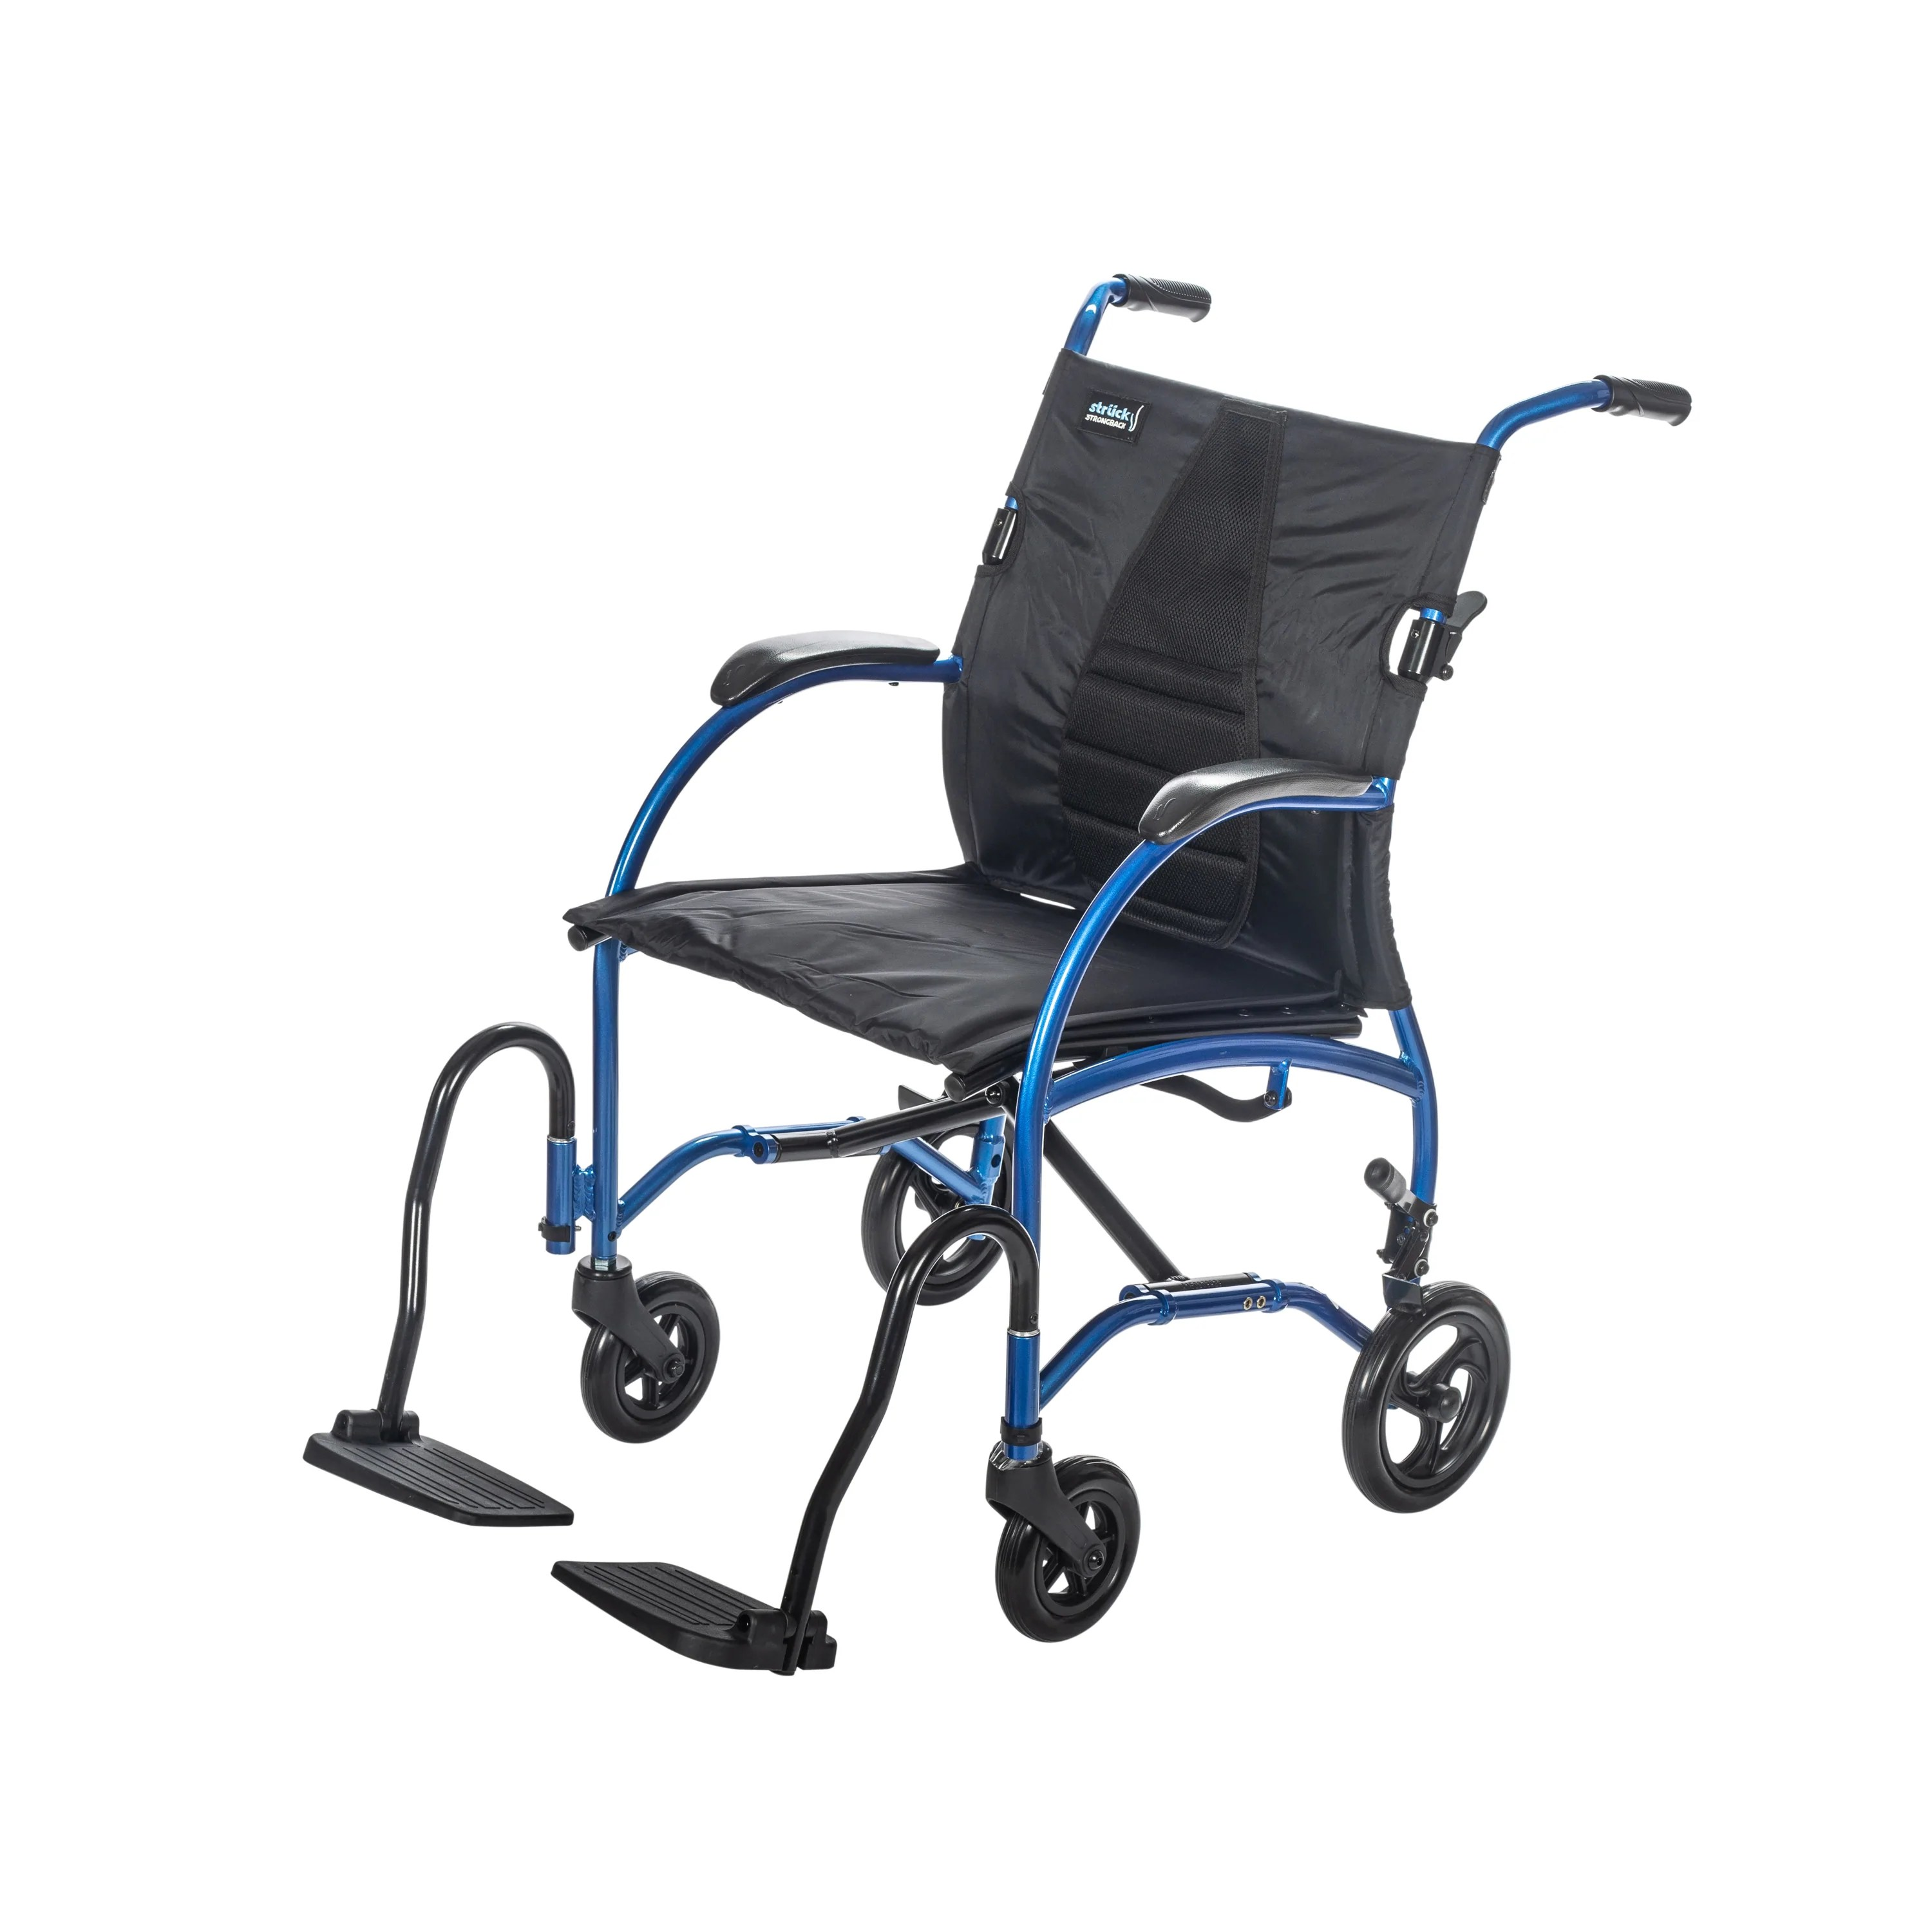 strong back chairs papasan chair covers sale strongback lightweight portable wheelchair troy technologies 8 rear wheel standard